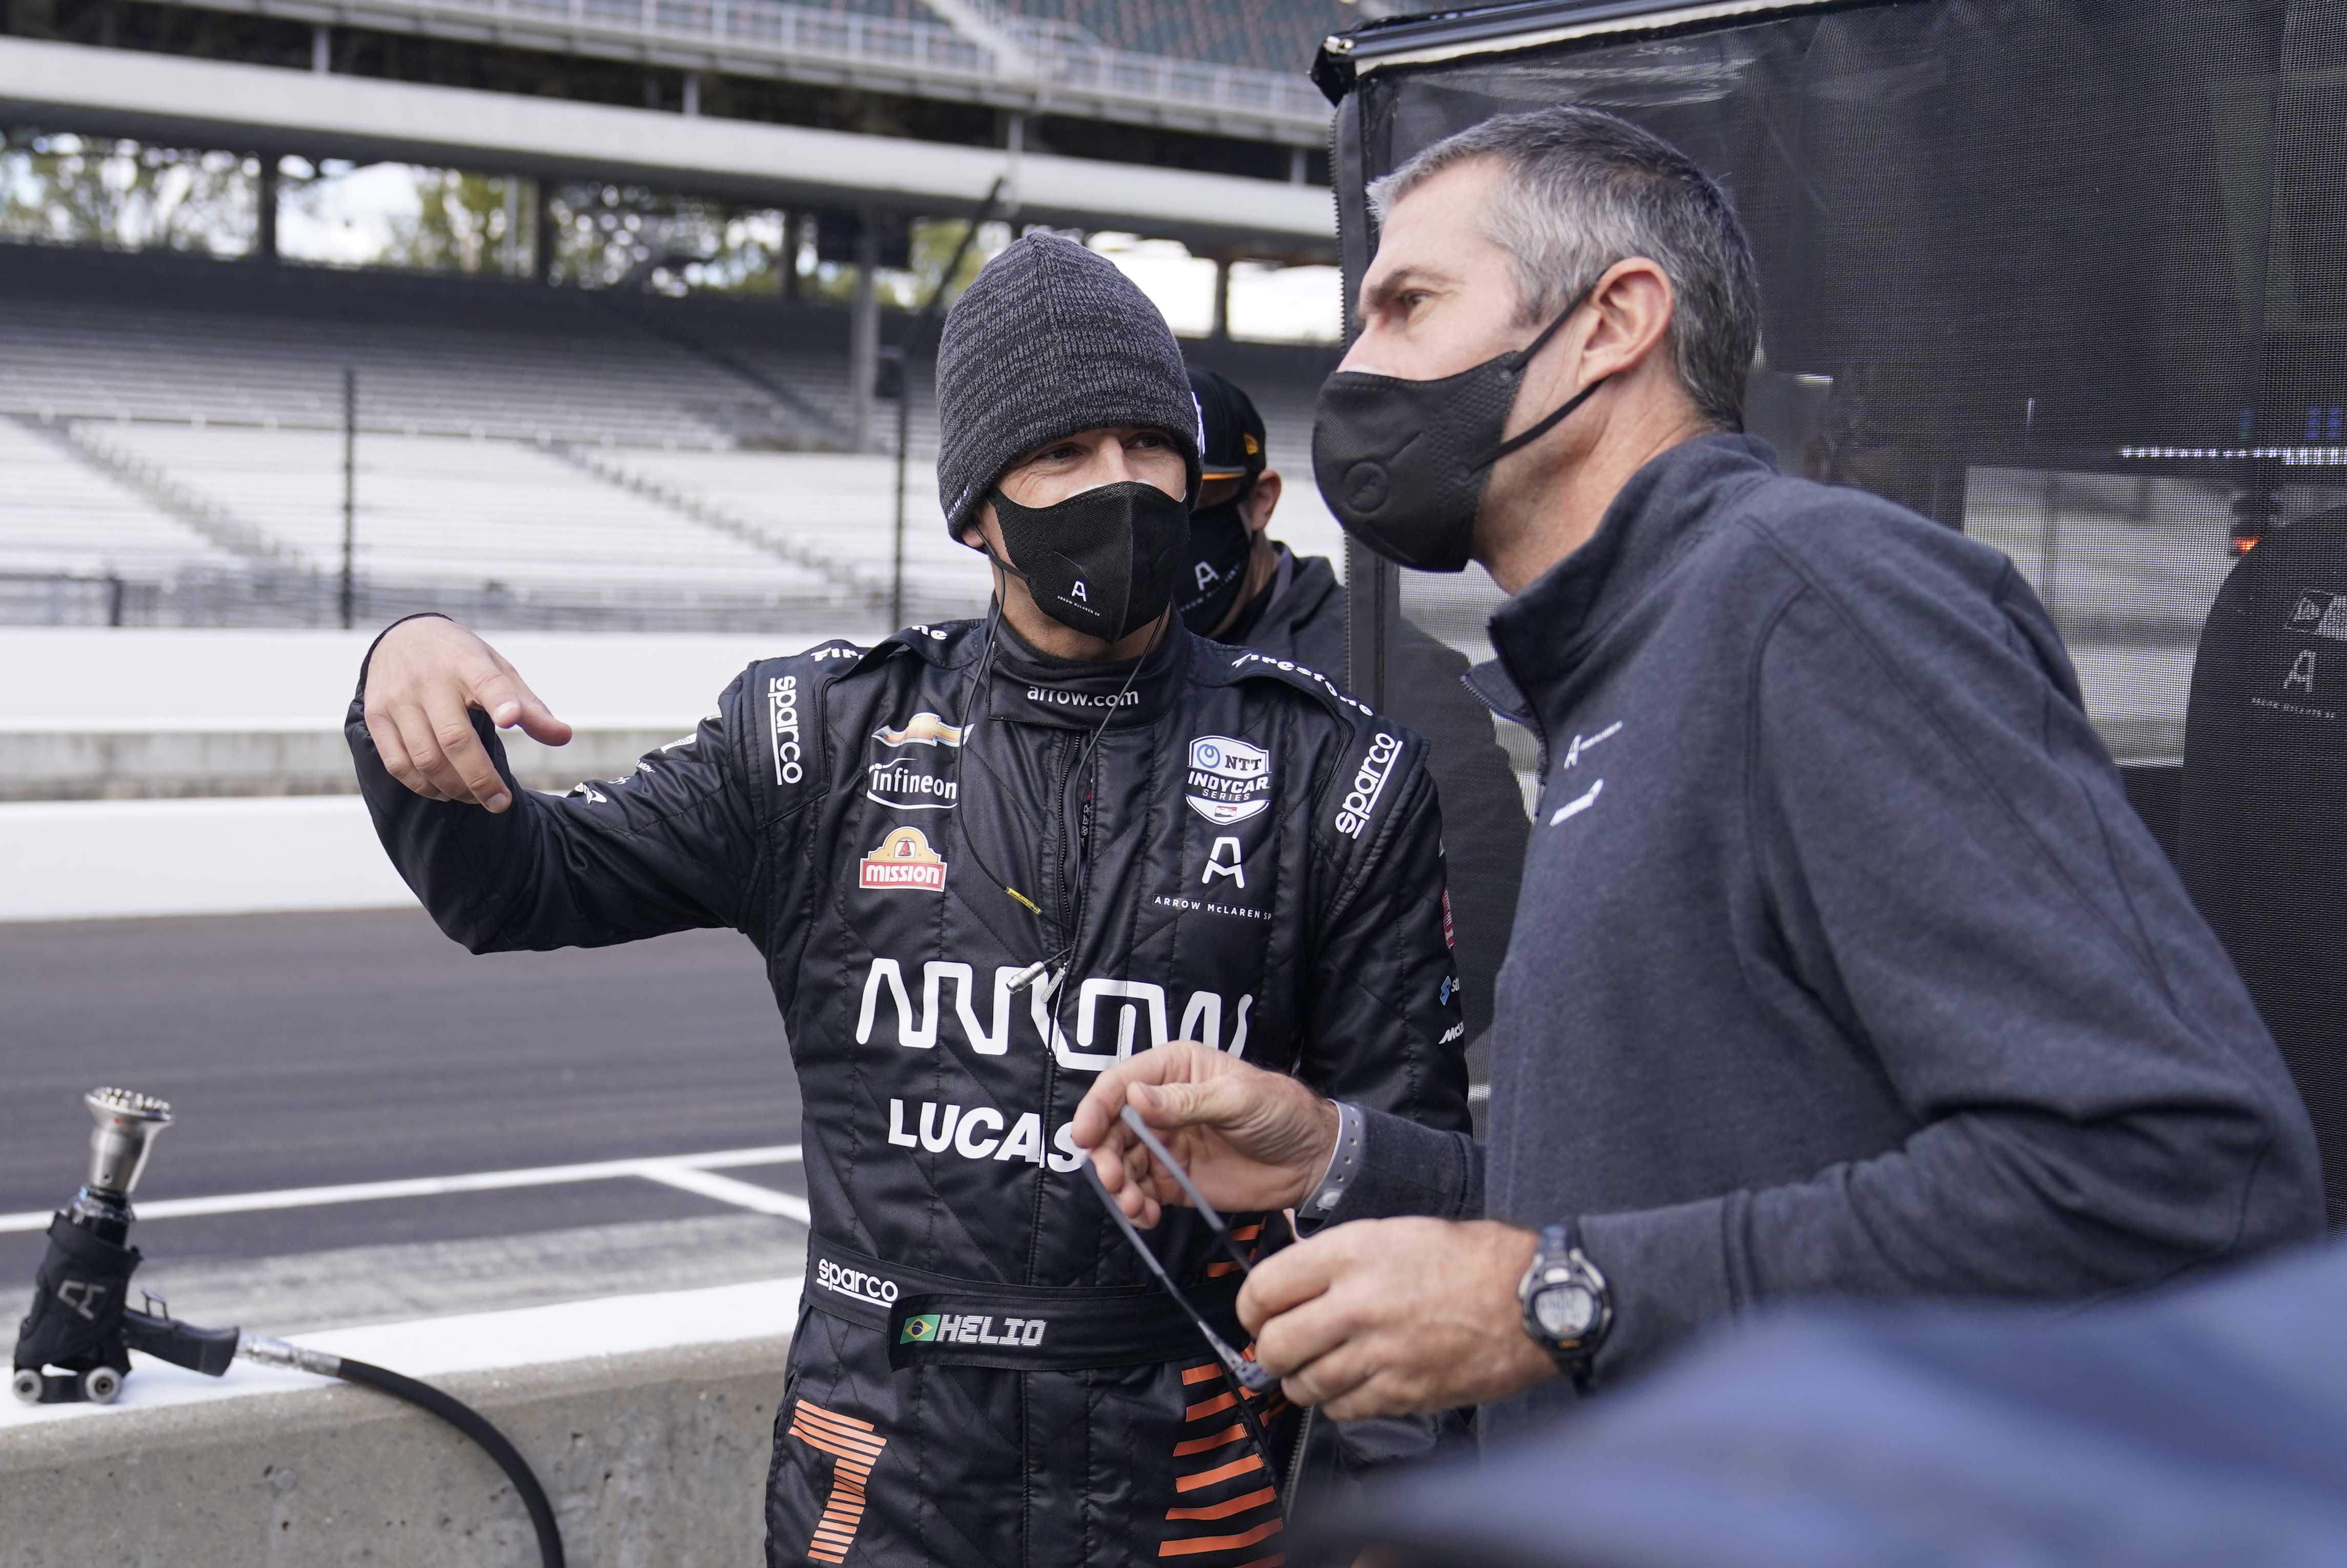 Helio Castroneves, left, of Brazil, talks with a crew member during a practice session for an IndyCar auto race at Indianapolis Motor Speedway, Thursday, Oct. 1, 2020, in Indianapolis. (AP Photo/Darron Cummings)